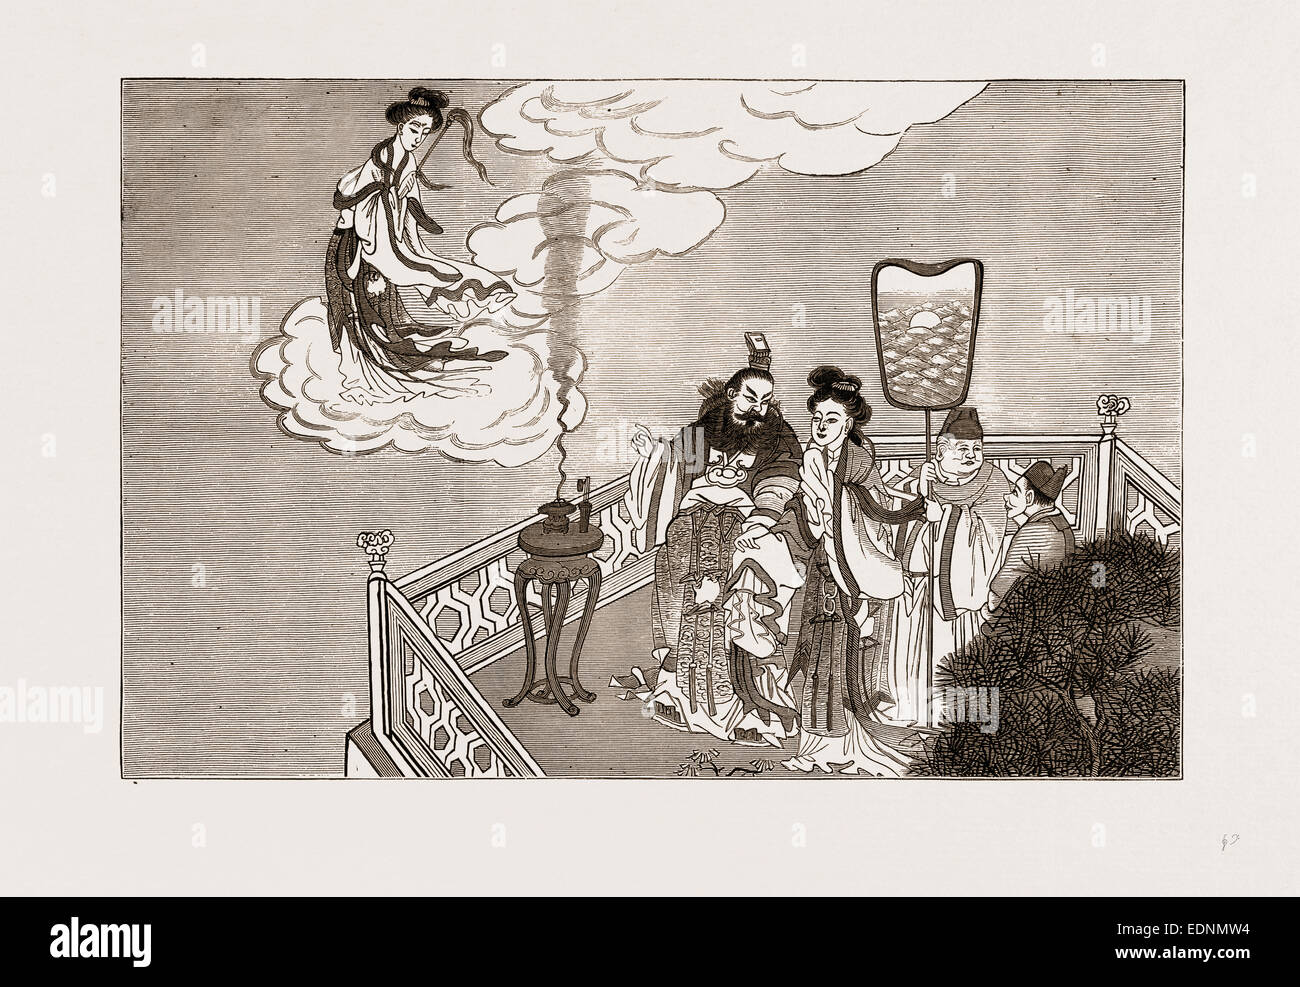 AN INCIDENT IN CHINESE MYTHOLOGY: THE EMPEROR MIAO CHWANG AND THE GODDESS KWAN-YIN - Stock Image